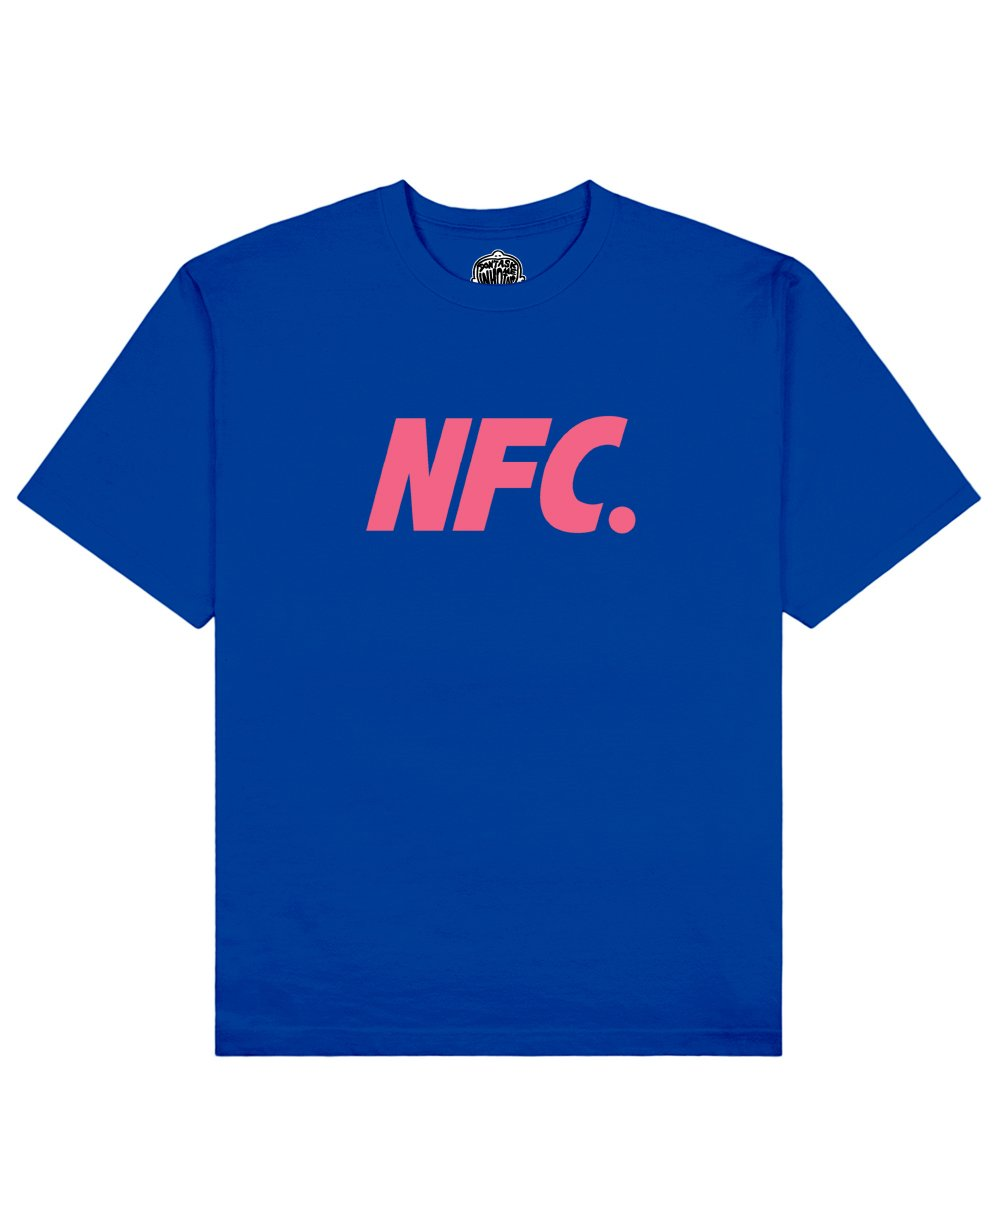 NFC Print T-shirt in Blue - T-Shirts - Don't ask me who I am - BRANMA